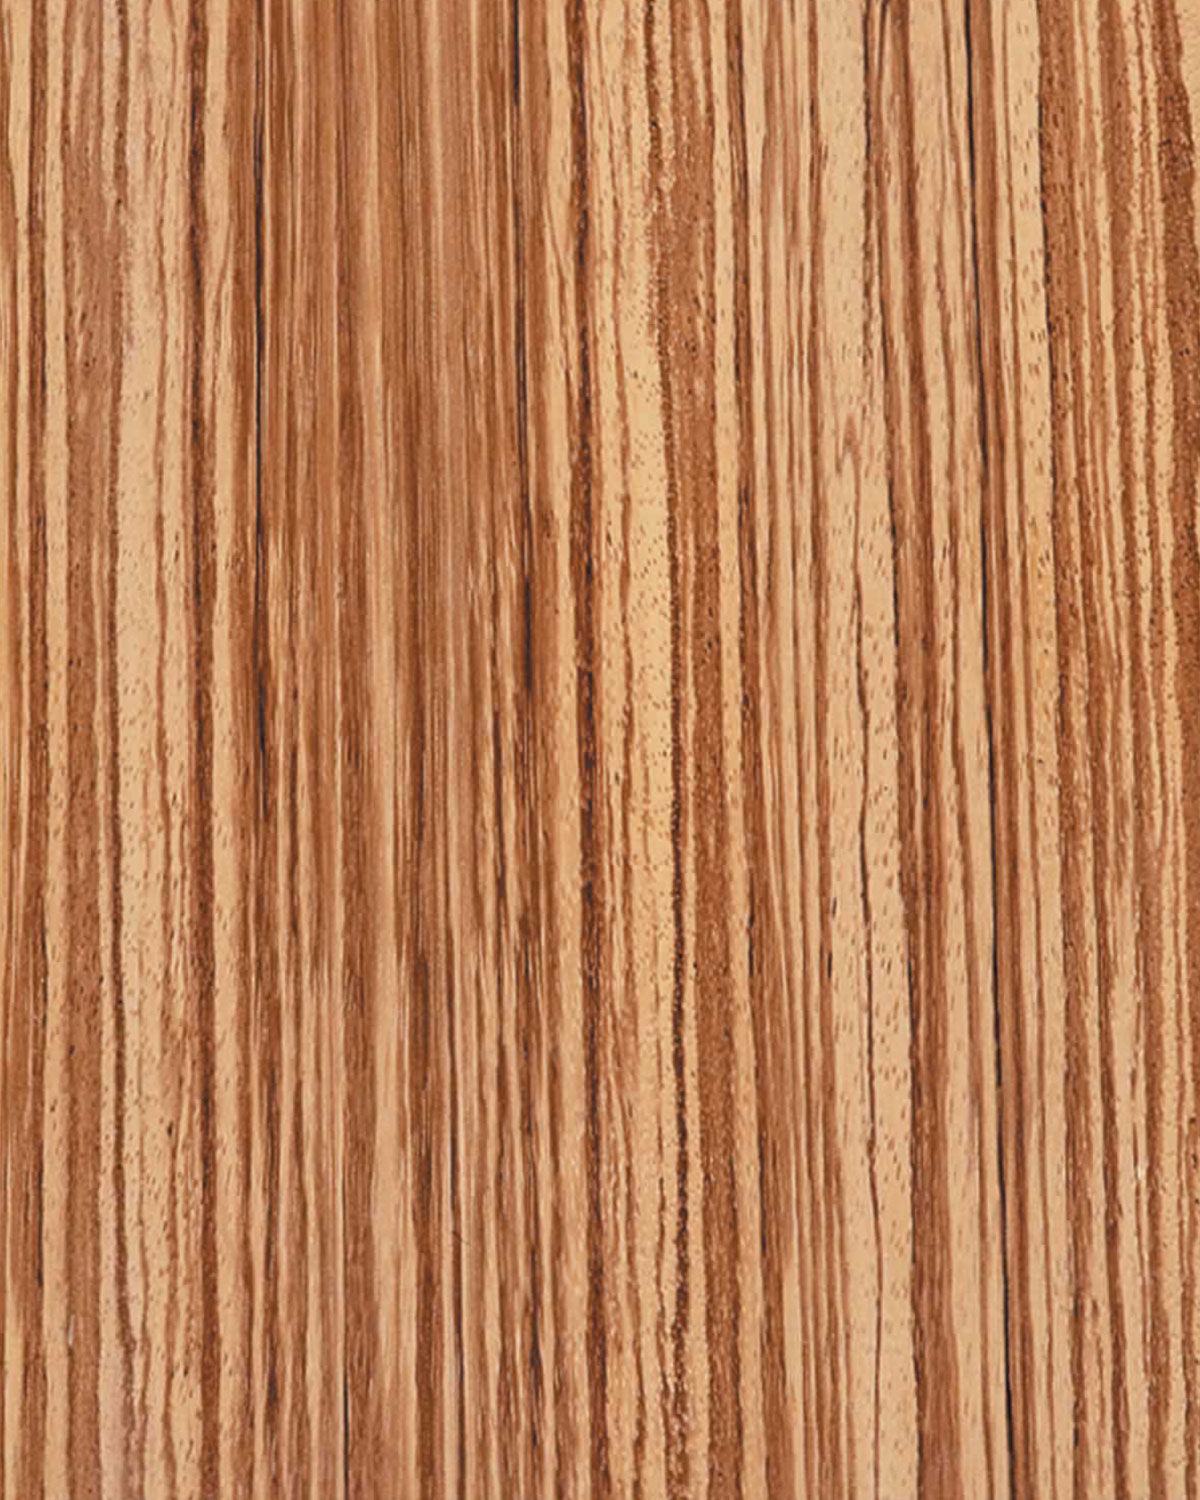 Recon Zebrawood Quarter Cut